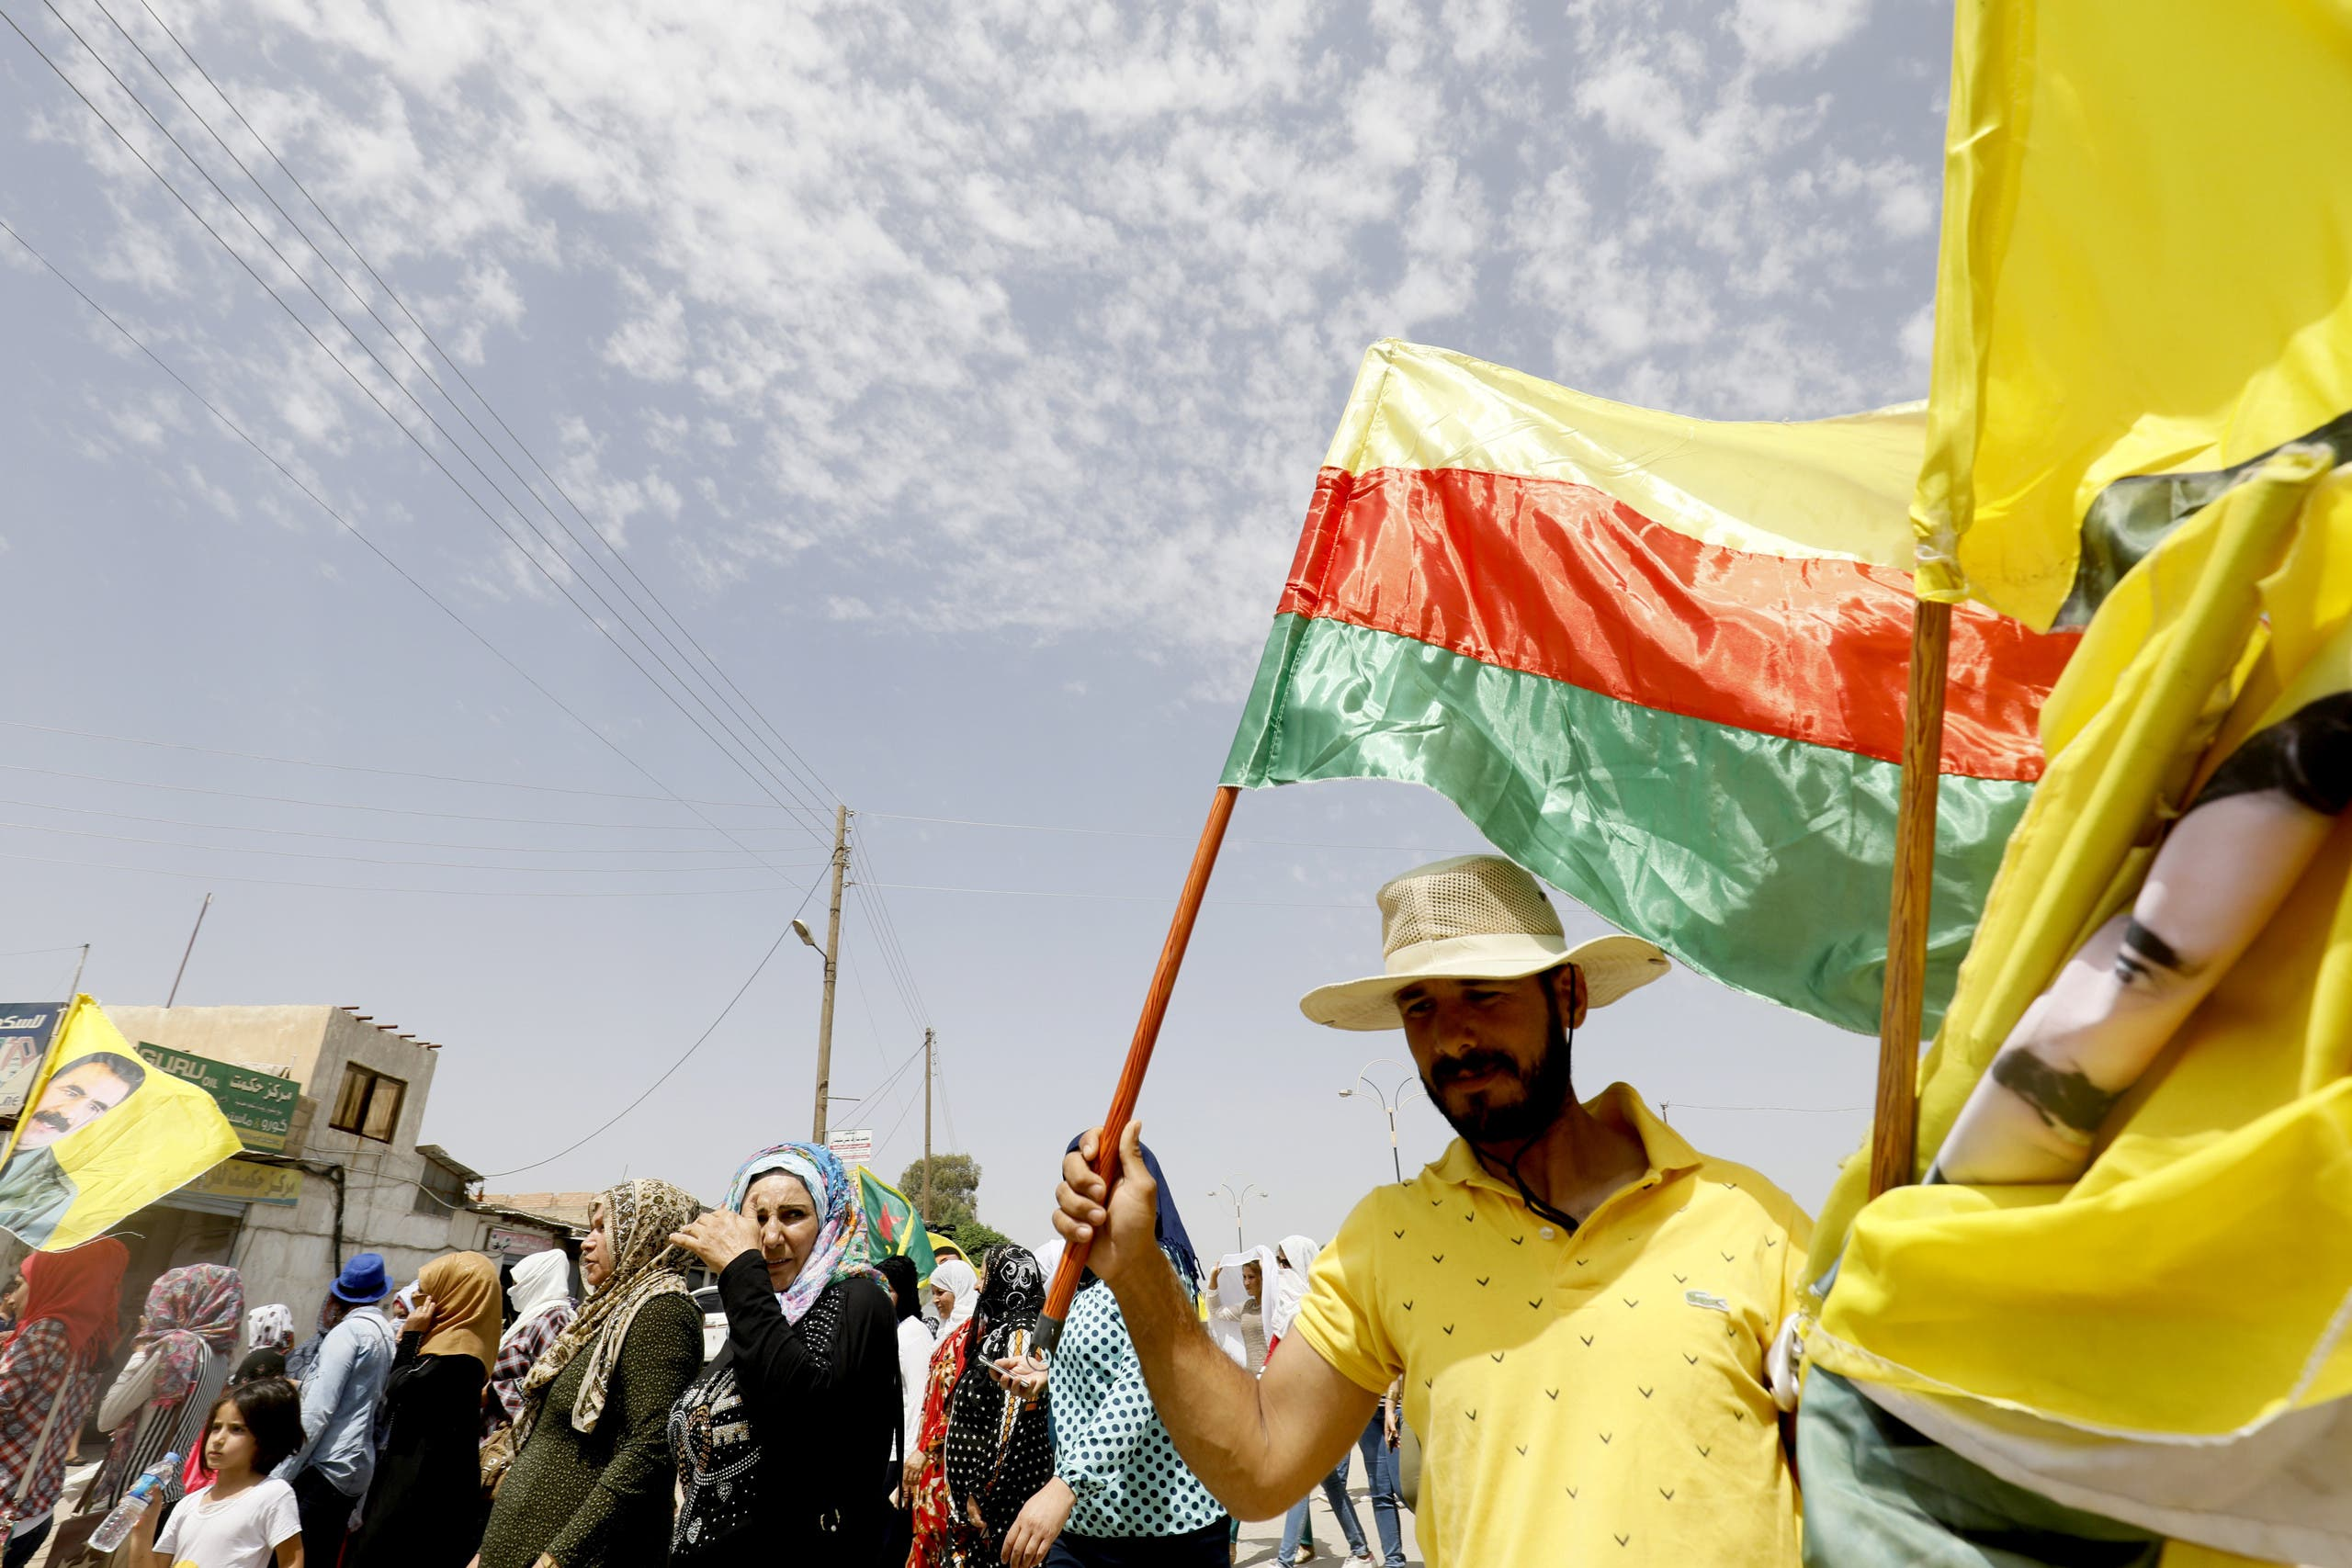 A Syrian-Kurdish man holds a Kurdish flag as well as flags with the face of Kurdistan Worker's Party (PKK) leader Abdullah Ocalan as people demonstrate against demographic changes forced by Turkey to repopulate Kurdish areas, in Qamishli on May 26, 2018. Delil souleiman / AFP